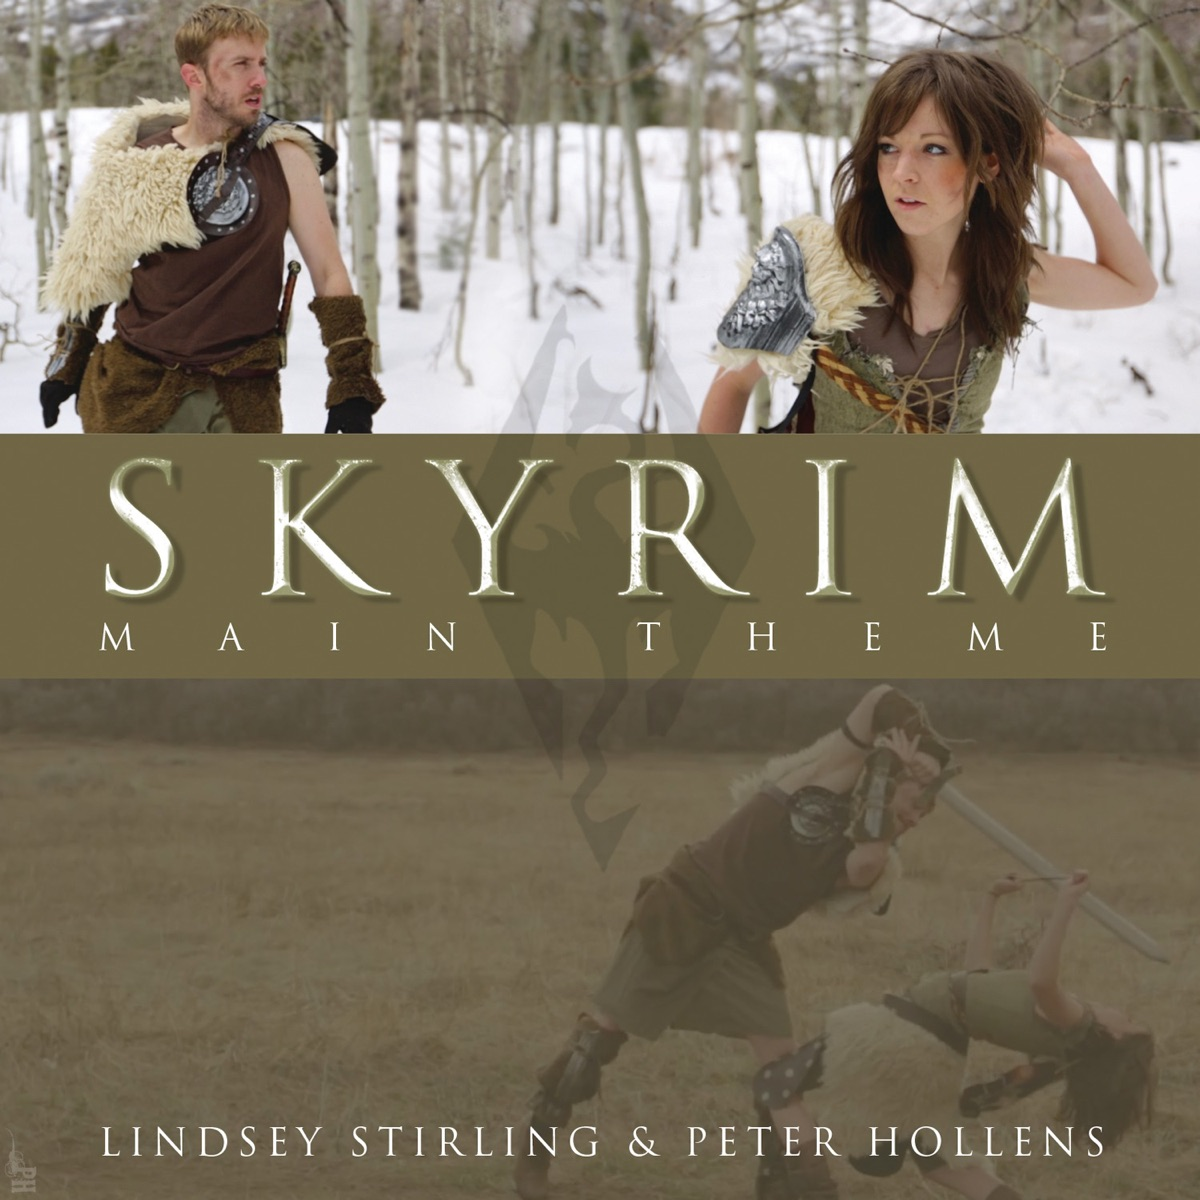 Skyrim Main Theme - Single Peter Hollens  Lindsey Stirling CD cover